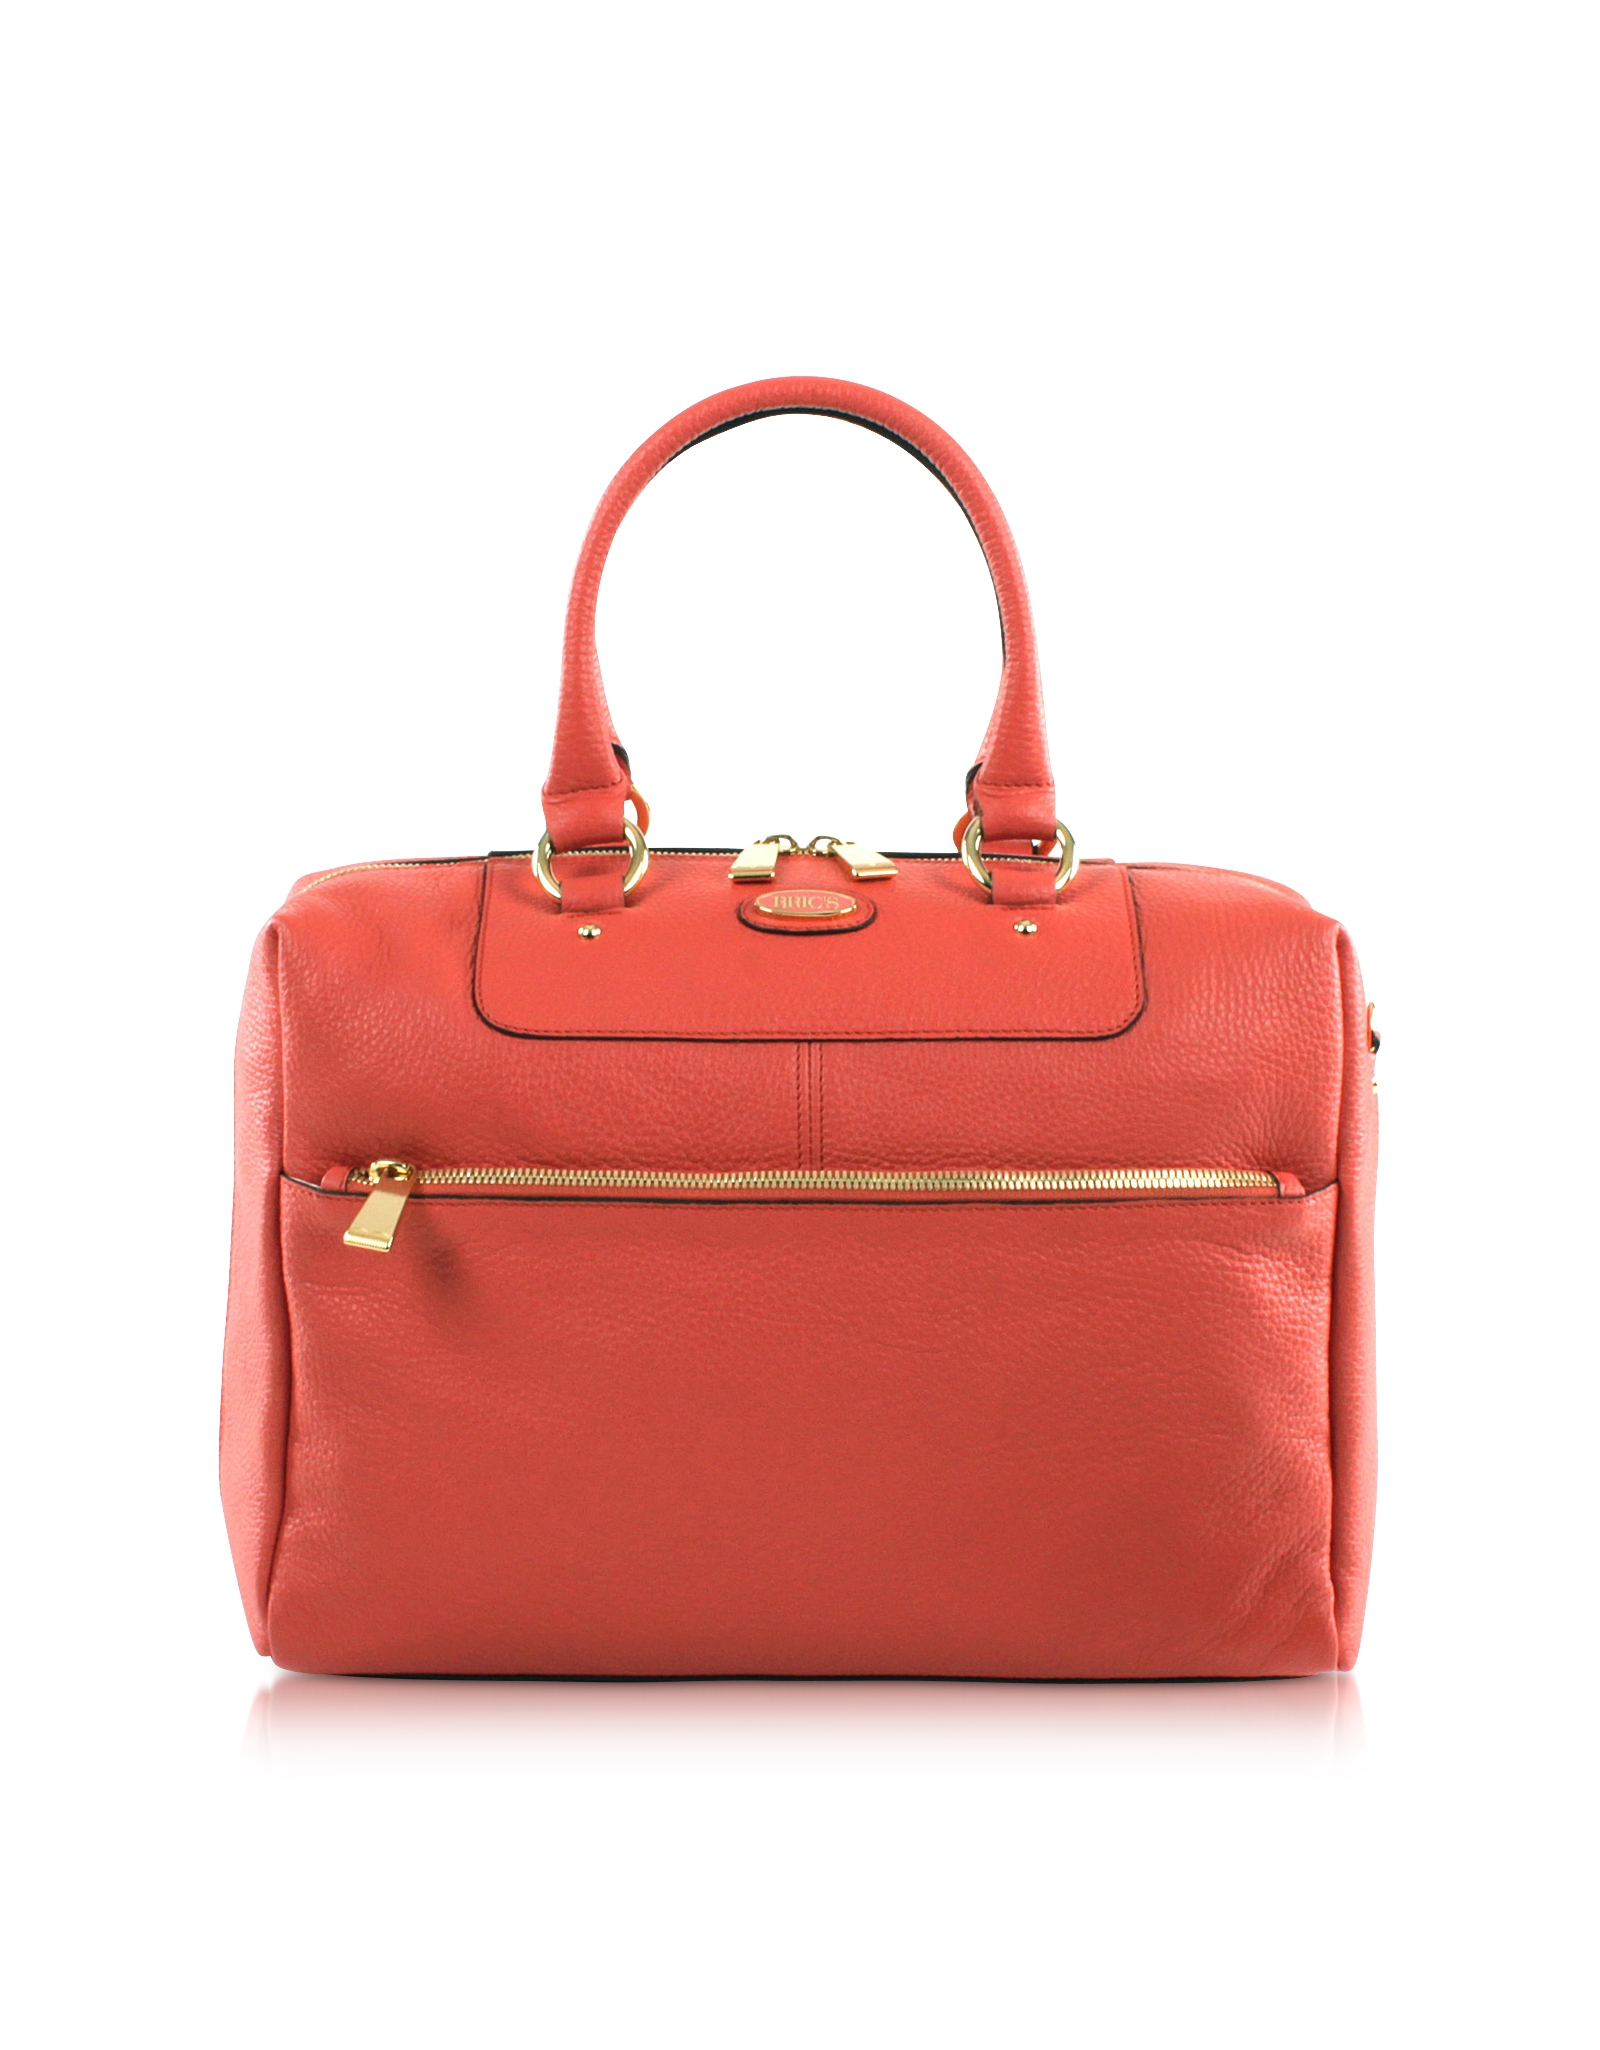 Borse Bag Verona : Bric s verona leather satchel bag in pink lyst